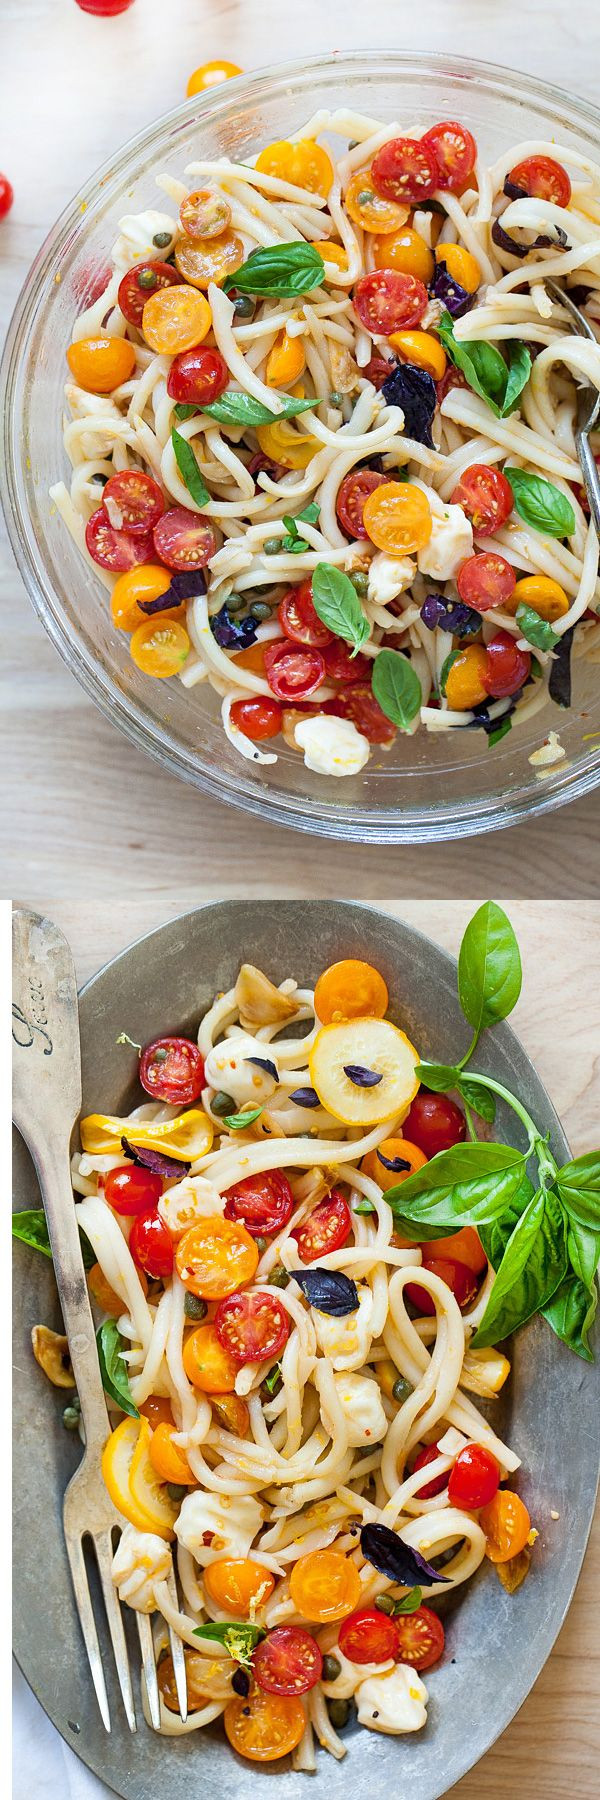 Great Summer Dinners  17 Best images about Summer Dinner Ideas on Pinterest